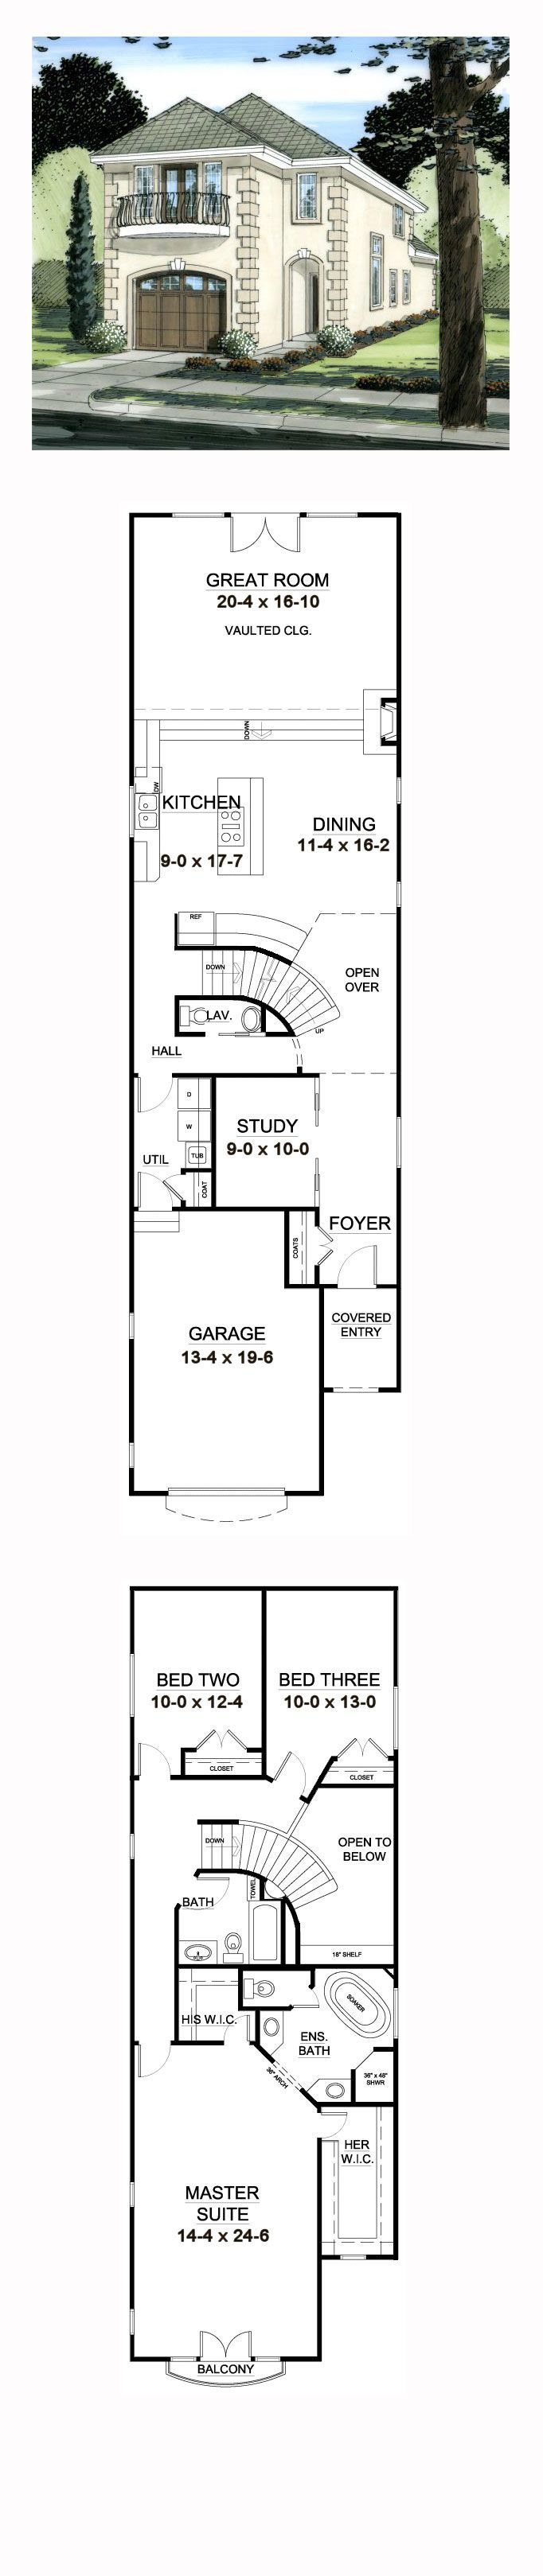 Florida house plan 99997 narrow lot house plans and bedrooms - Narrow house plan paint ...